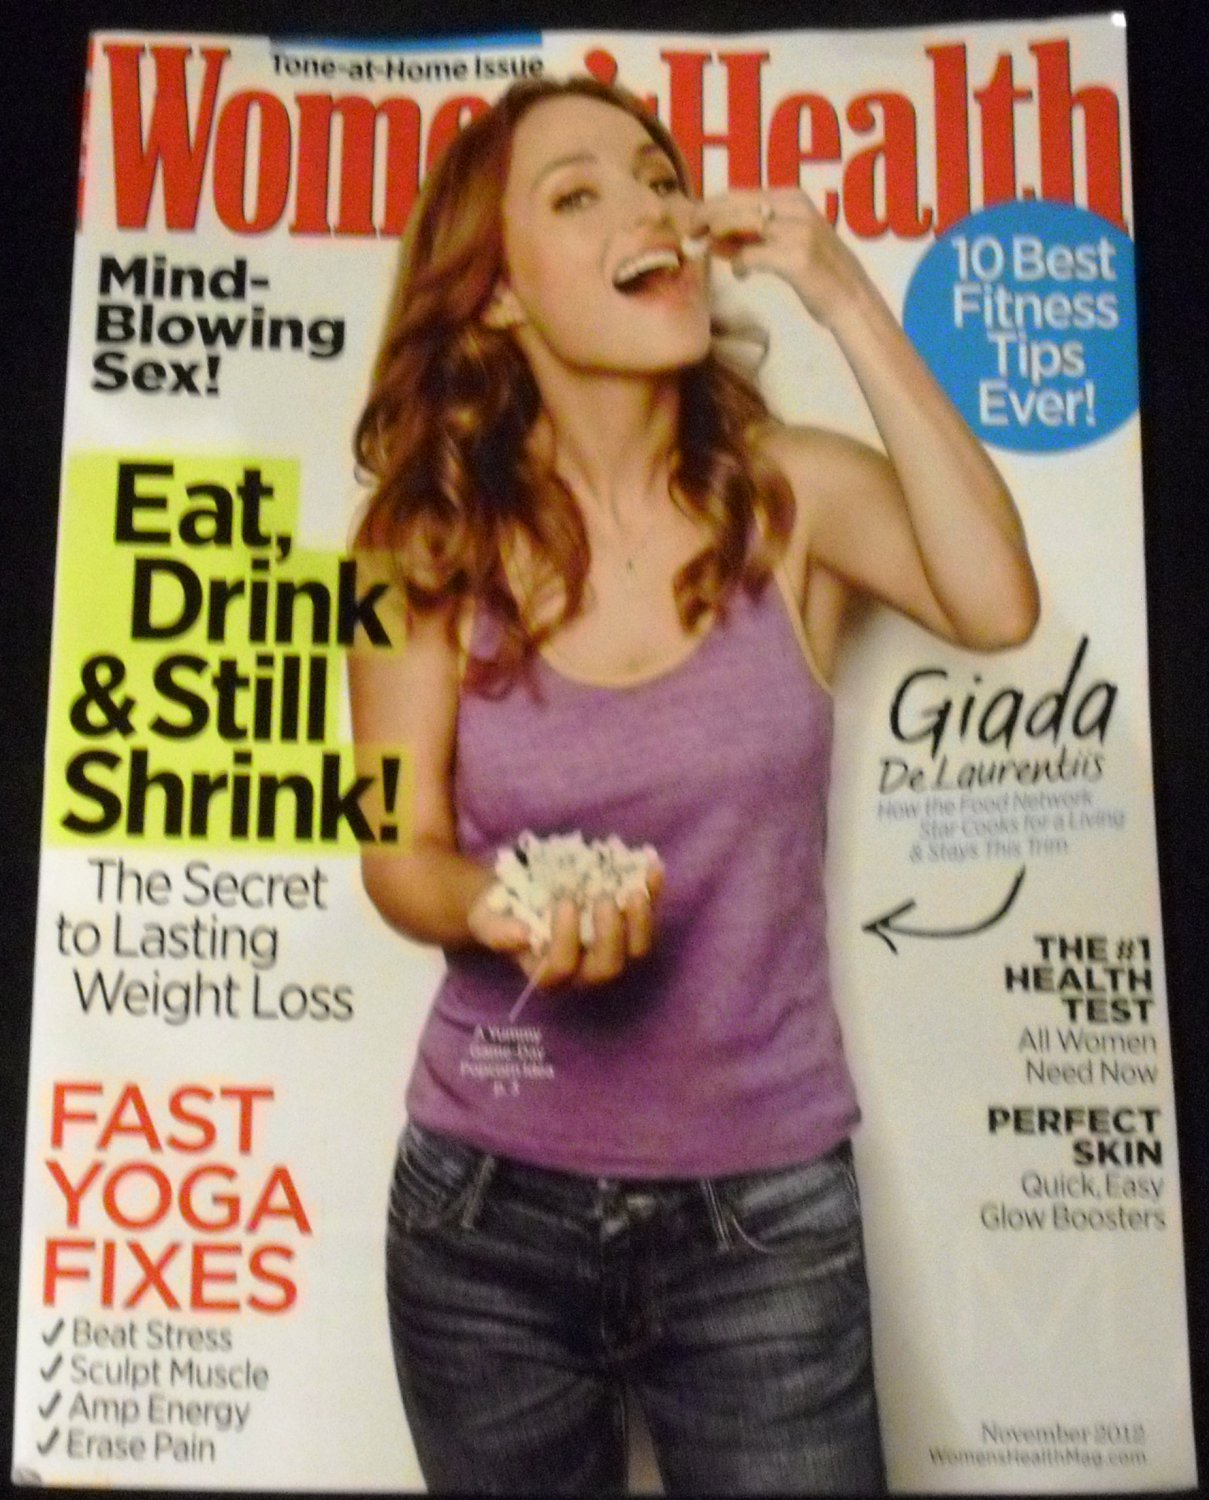 Women's Health Magazine (November 2012) Giada DeLaurentiis